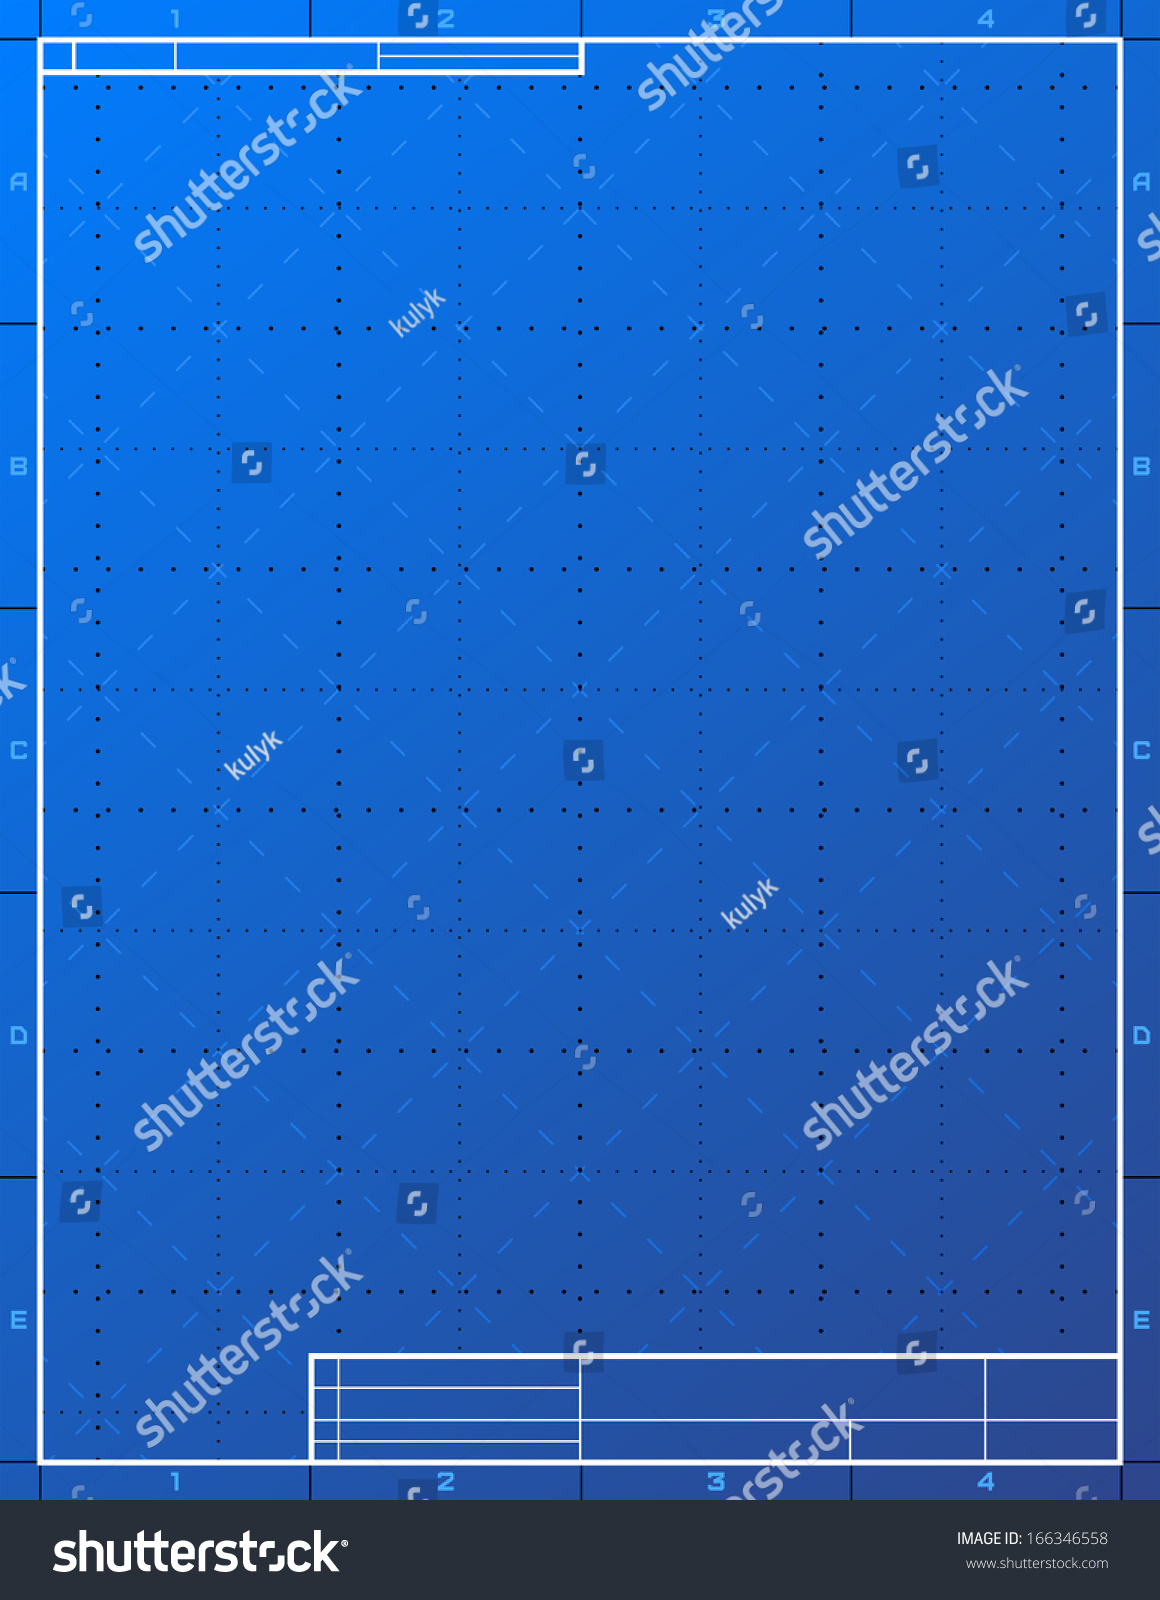 Blank blueprint paper drafting drawing sheet stock vector blank blueprint paper for drafting drawing sheet layout with frame and title block vector malvernweather Image collections